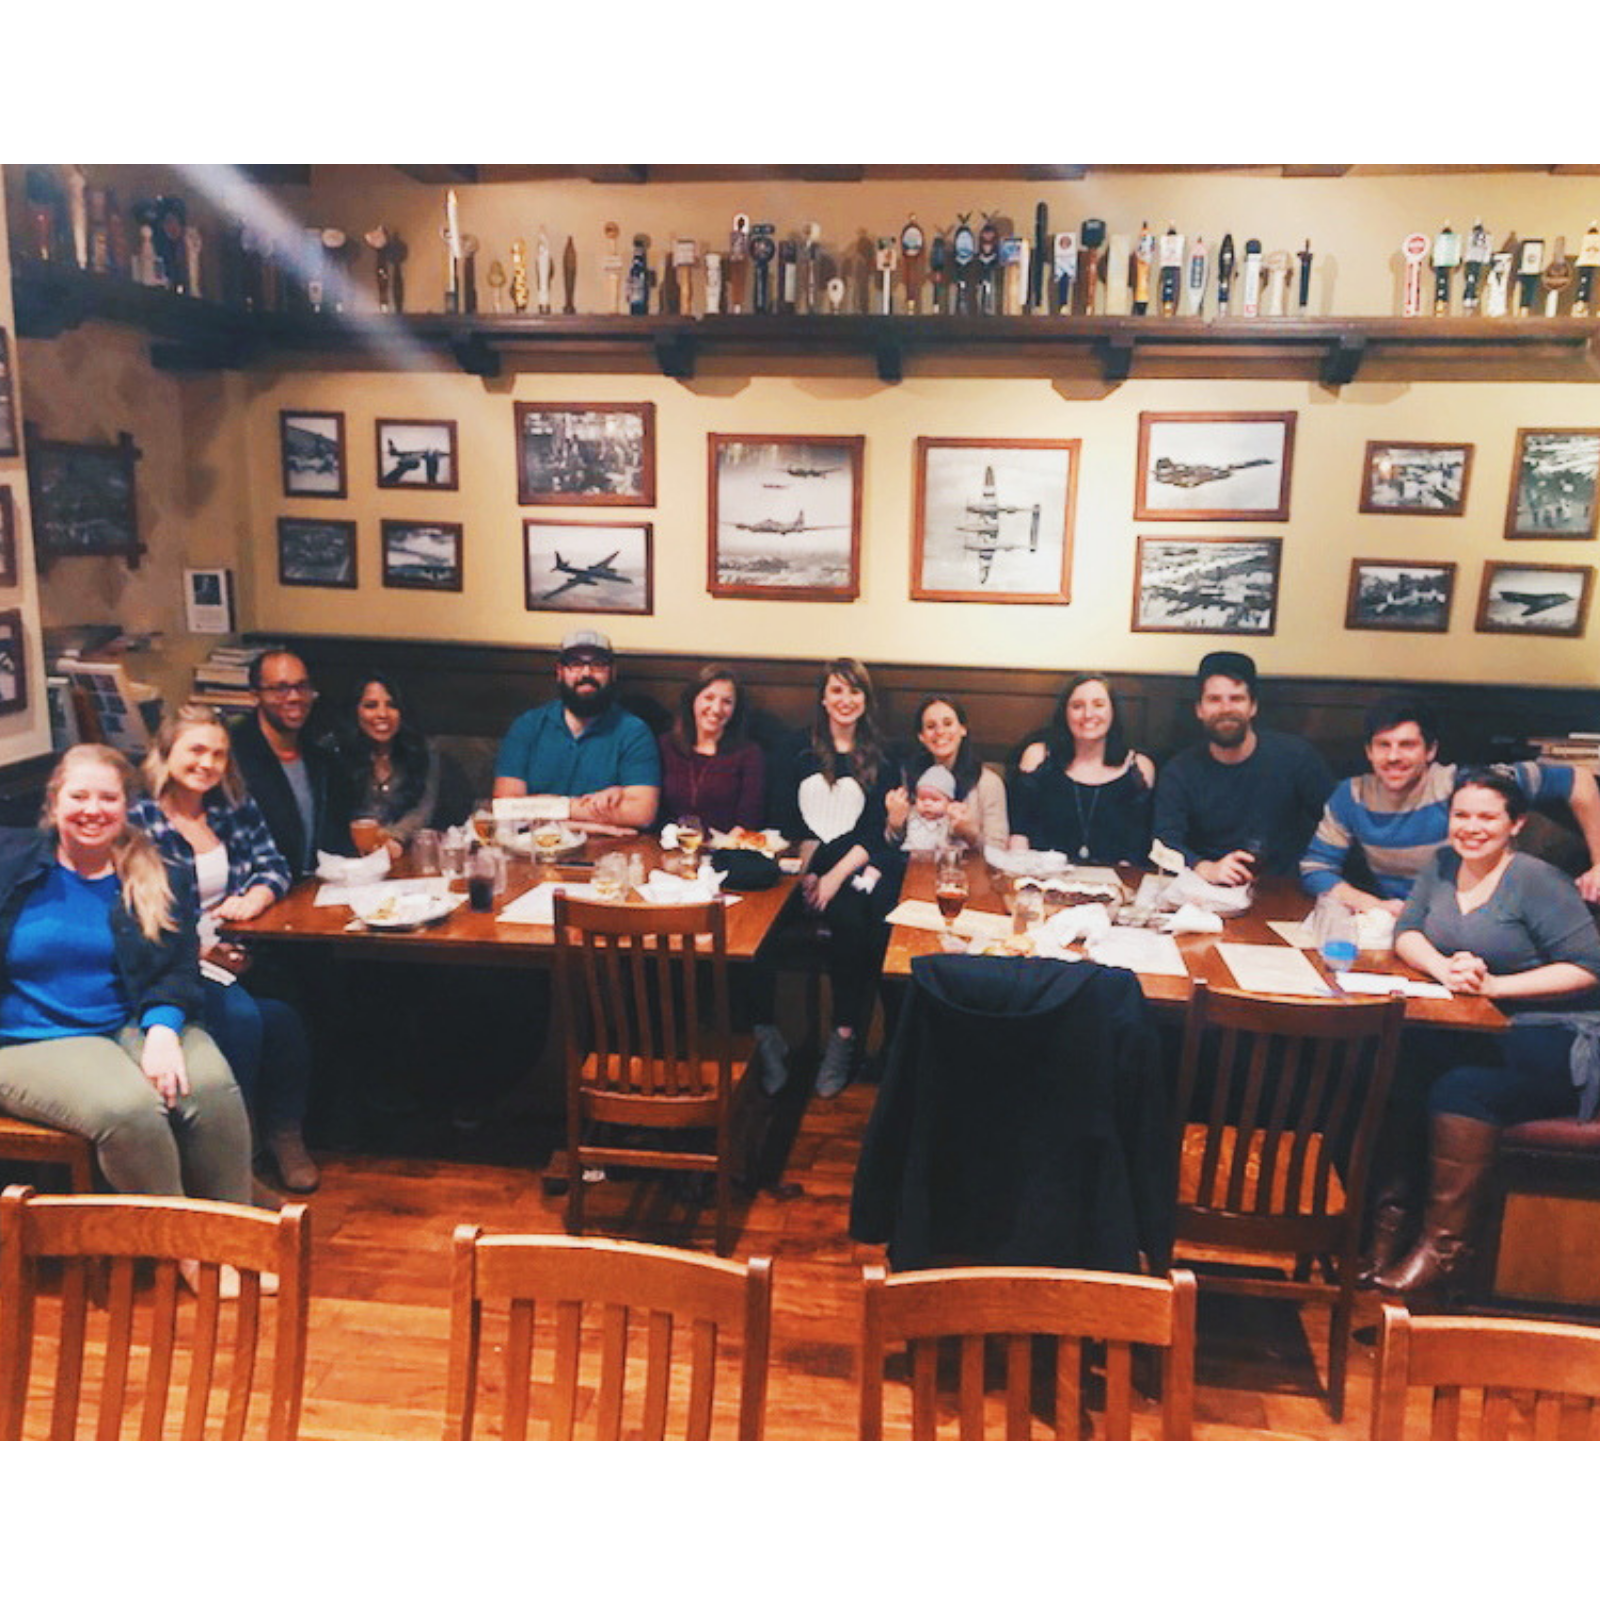 A big group of smiling friends sitting at a table